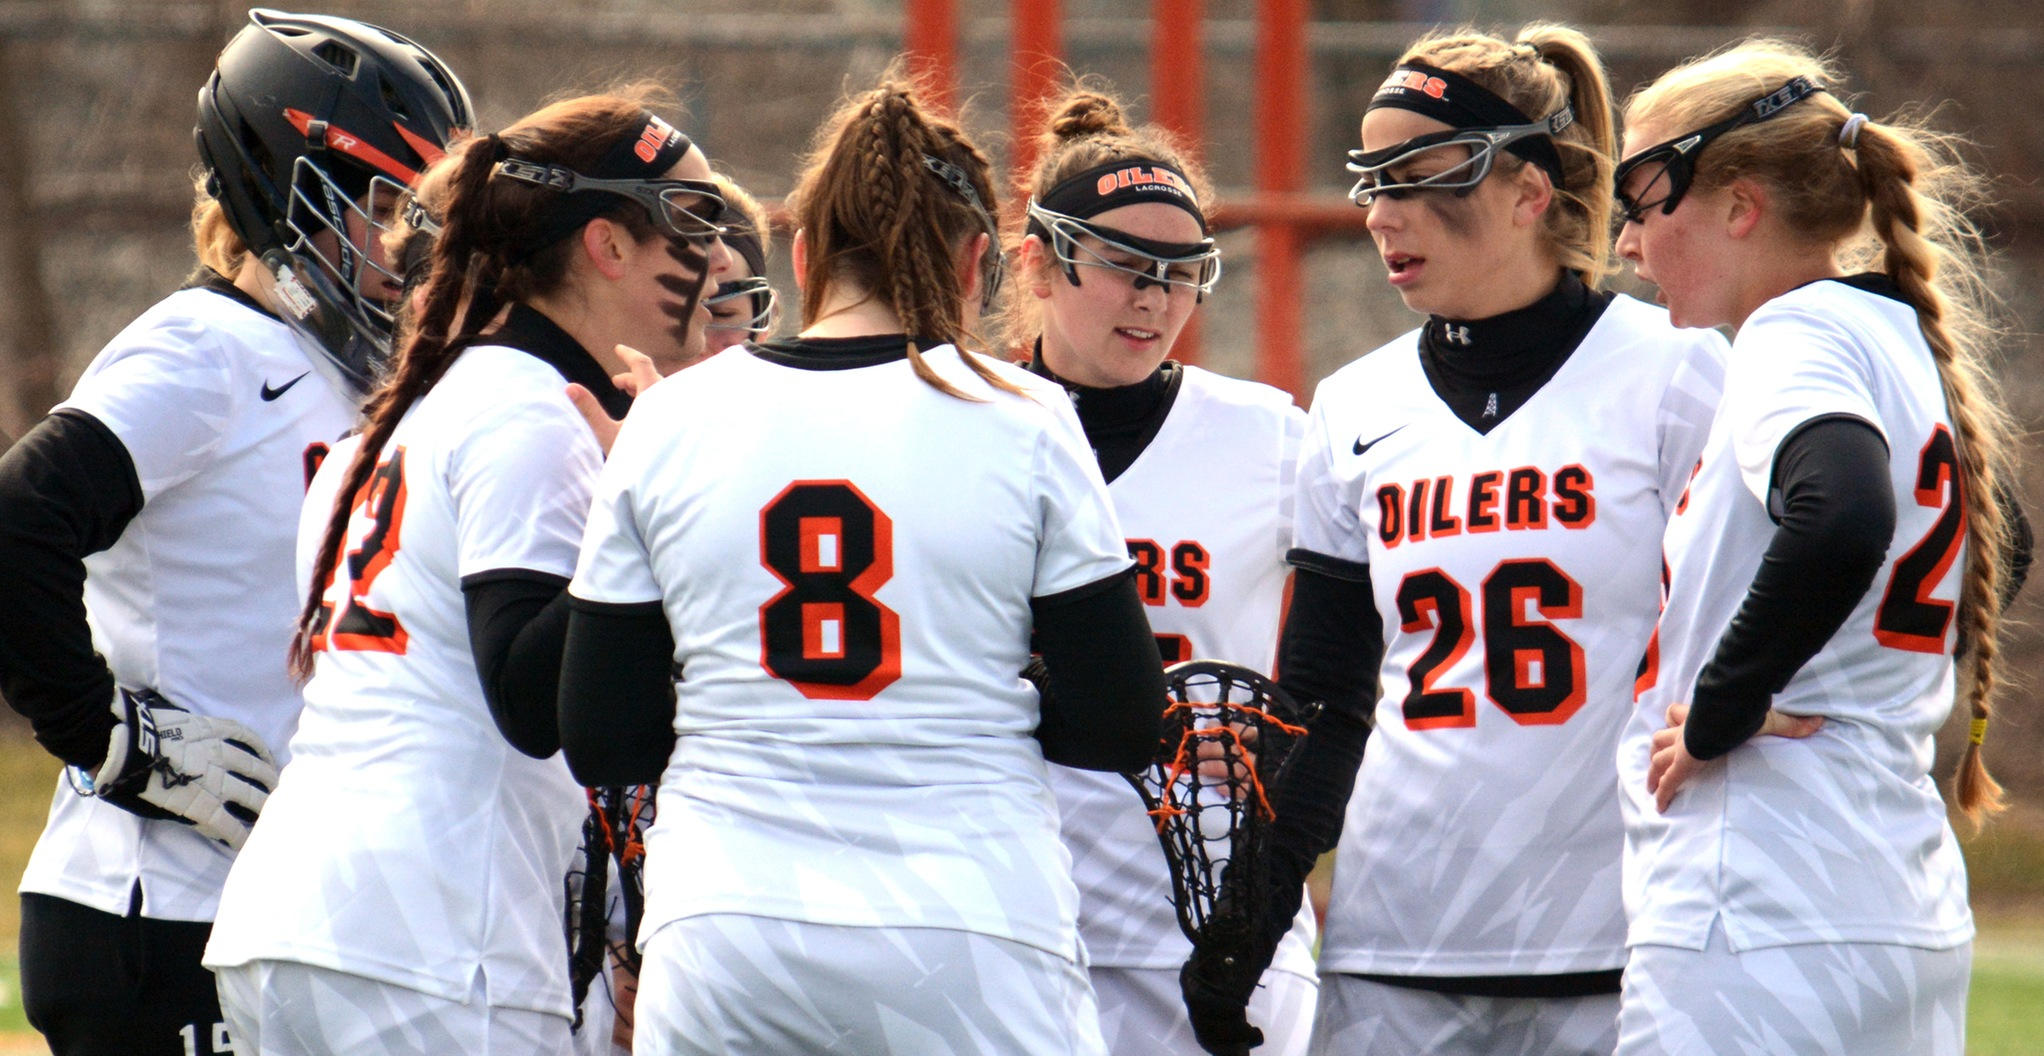 Oilers Win Big at Ursuline